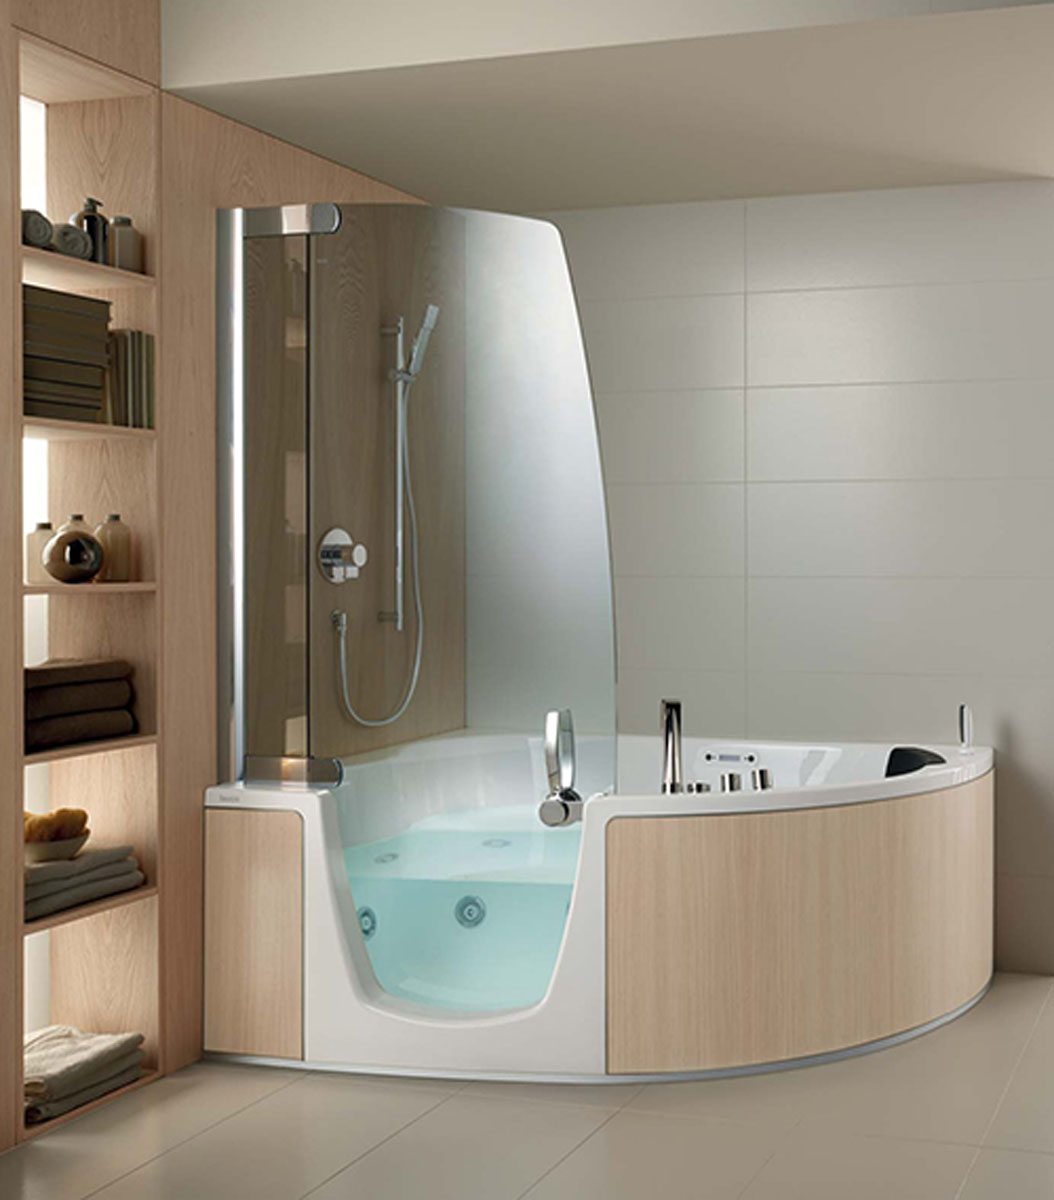 Shower Over Corner Bath small corner bathtub with shower | pool design ideas